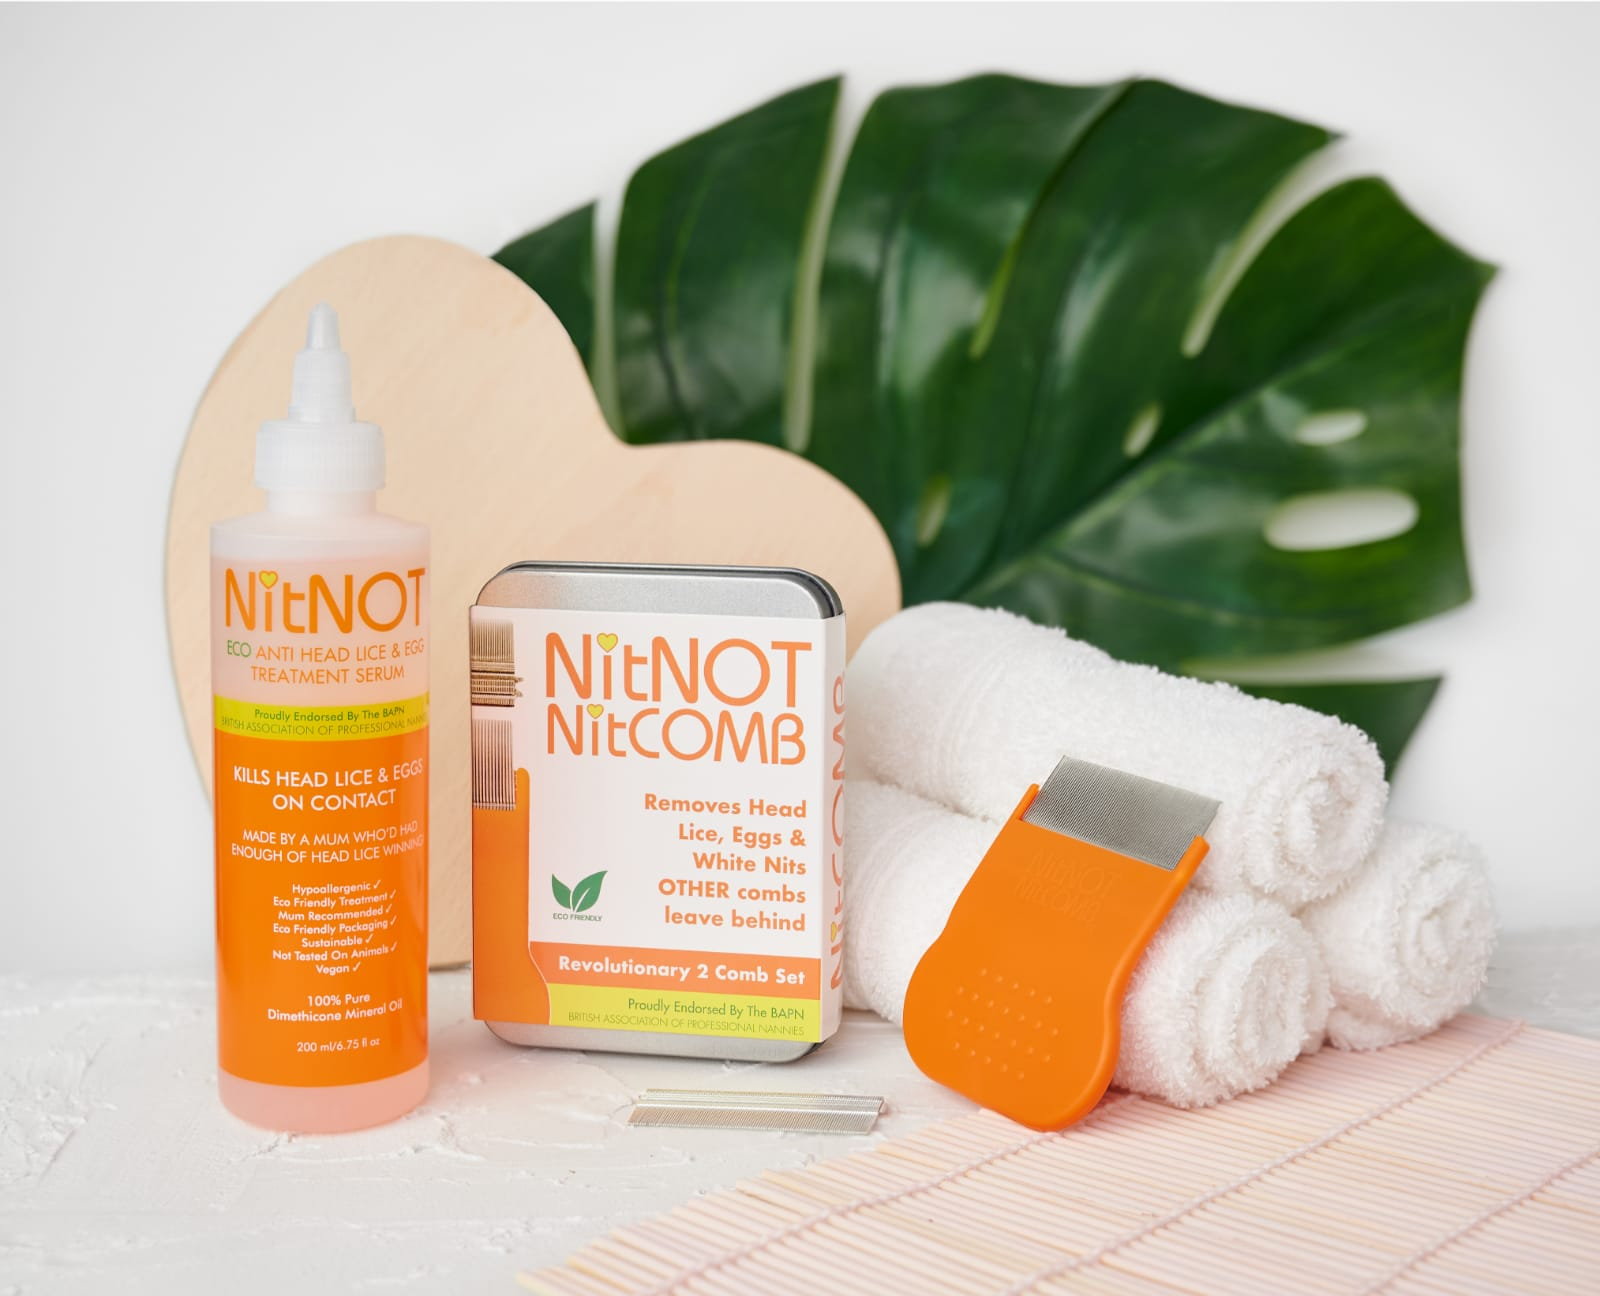 NitNOT products